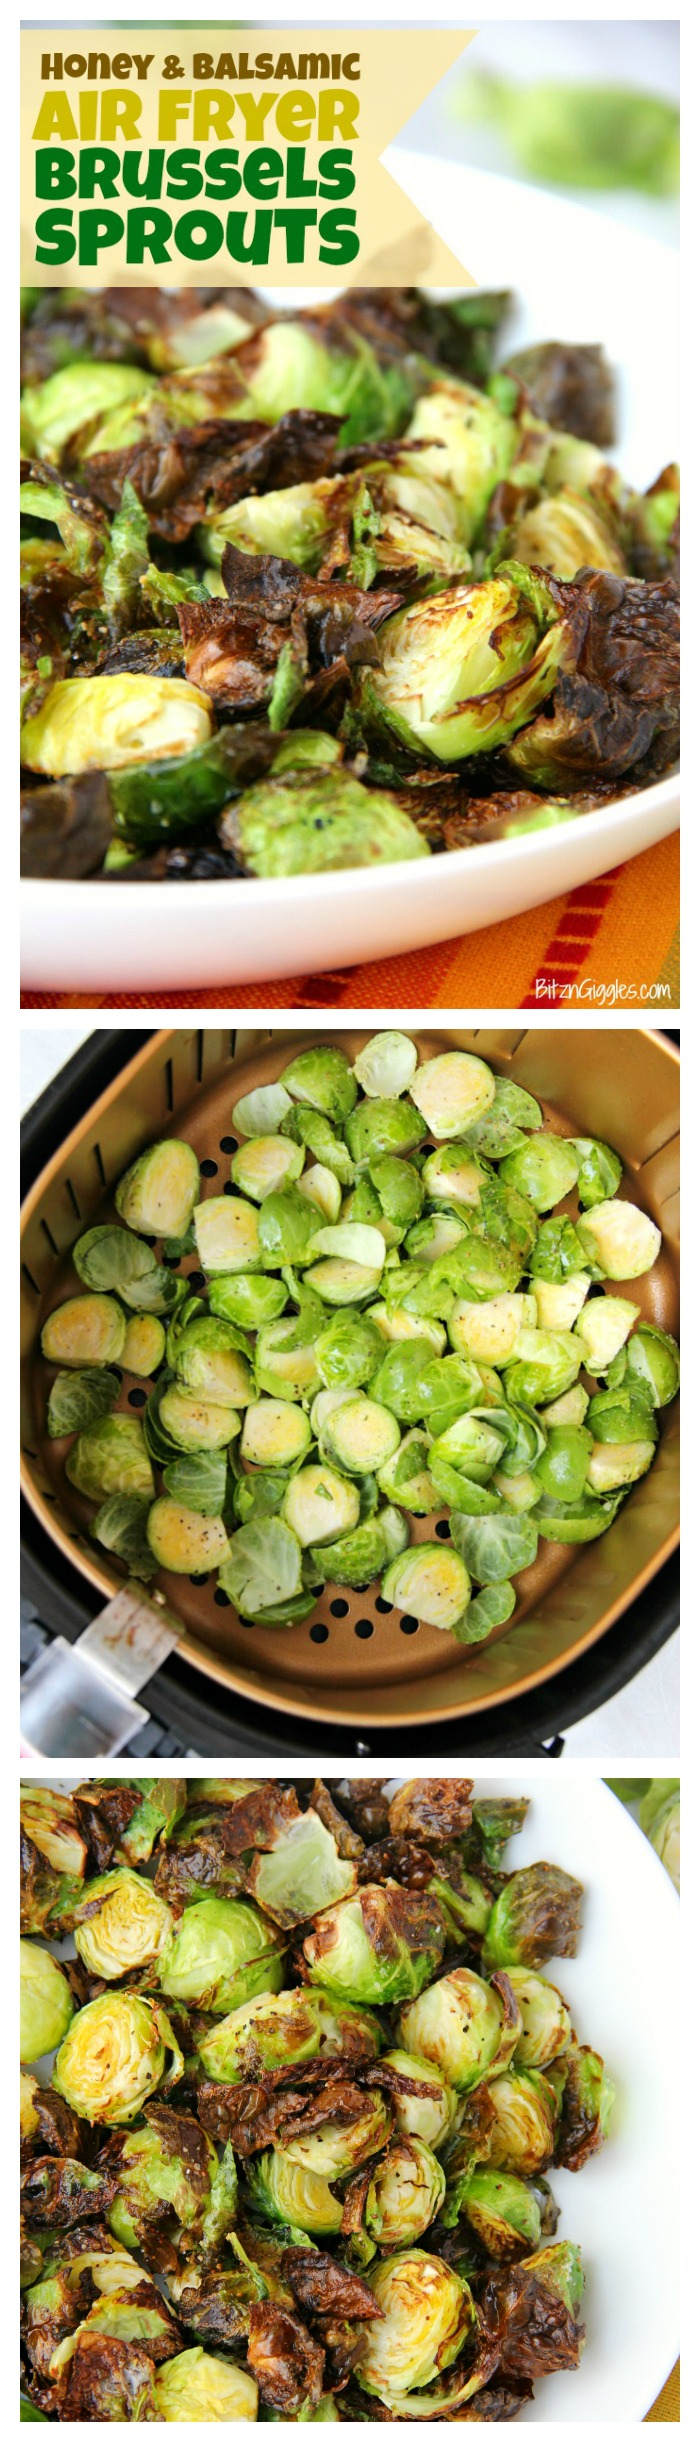 Honey and Balsamic Air Fryer Brussels Sprouts - Crispy and flavorful brussels spouts with notes of honey and balsamic. This is the only way I prepare brussels sprouts now!